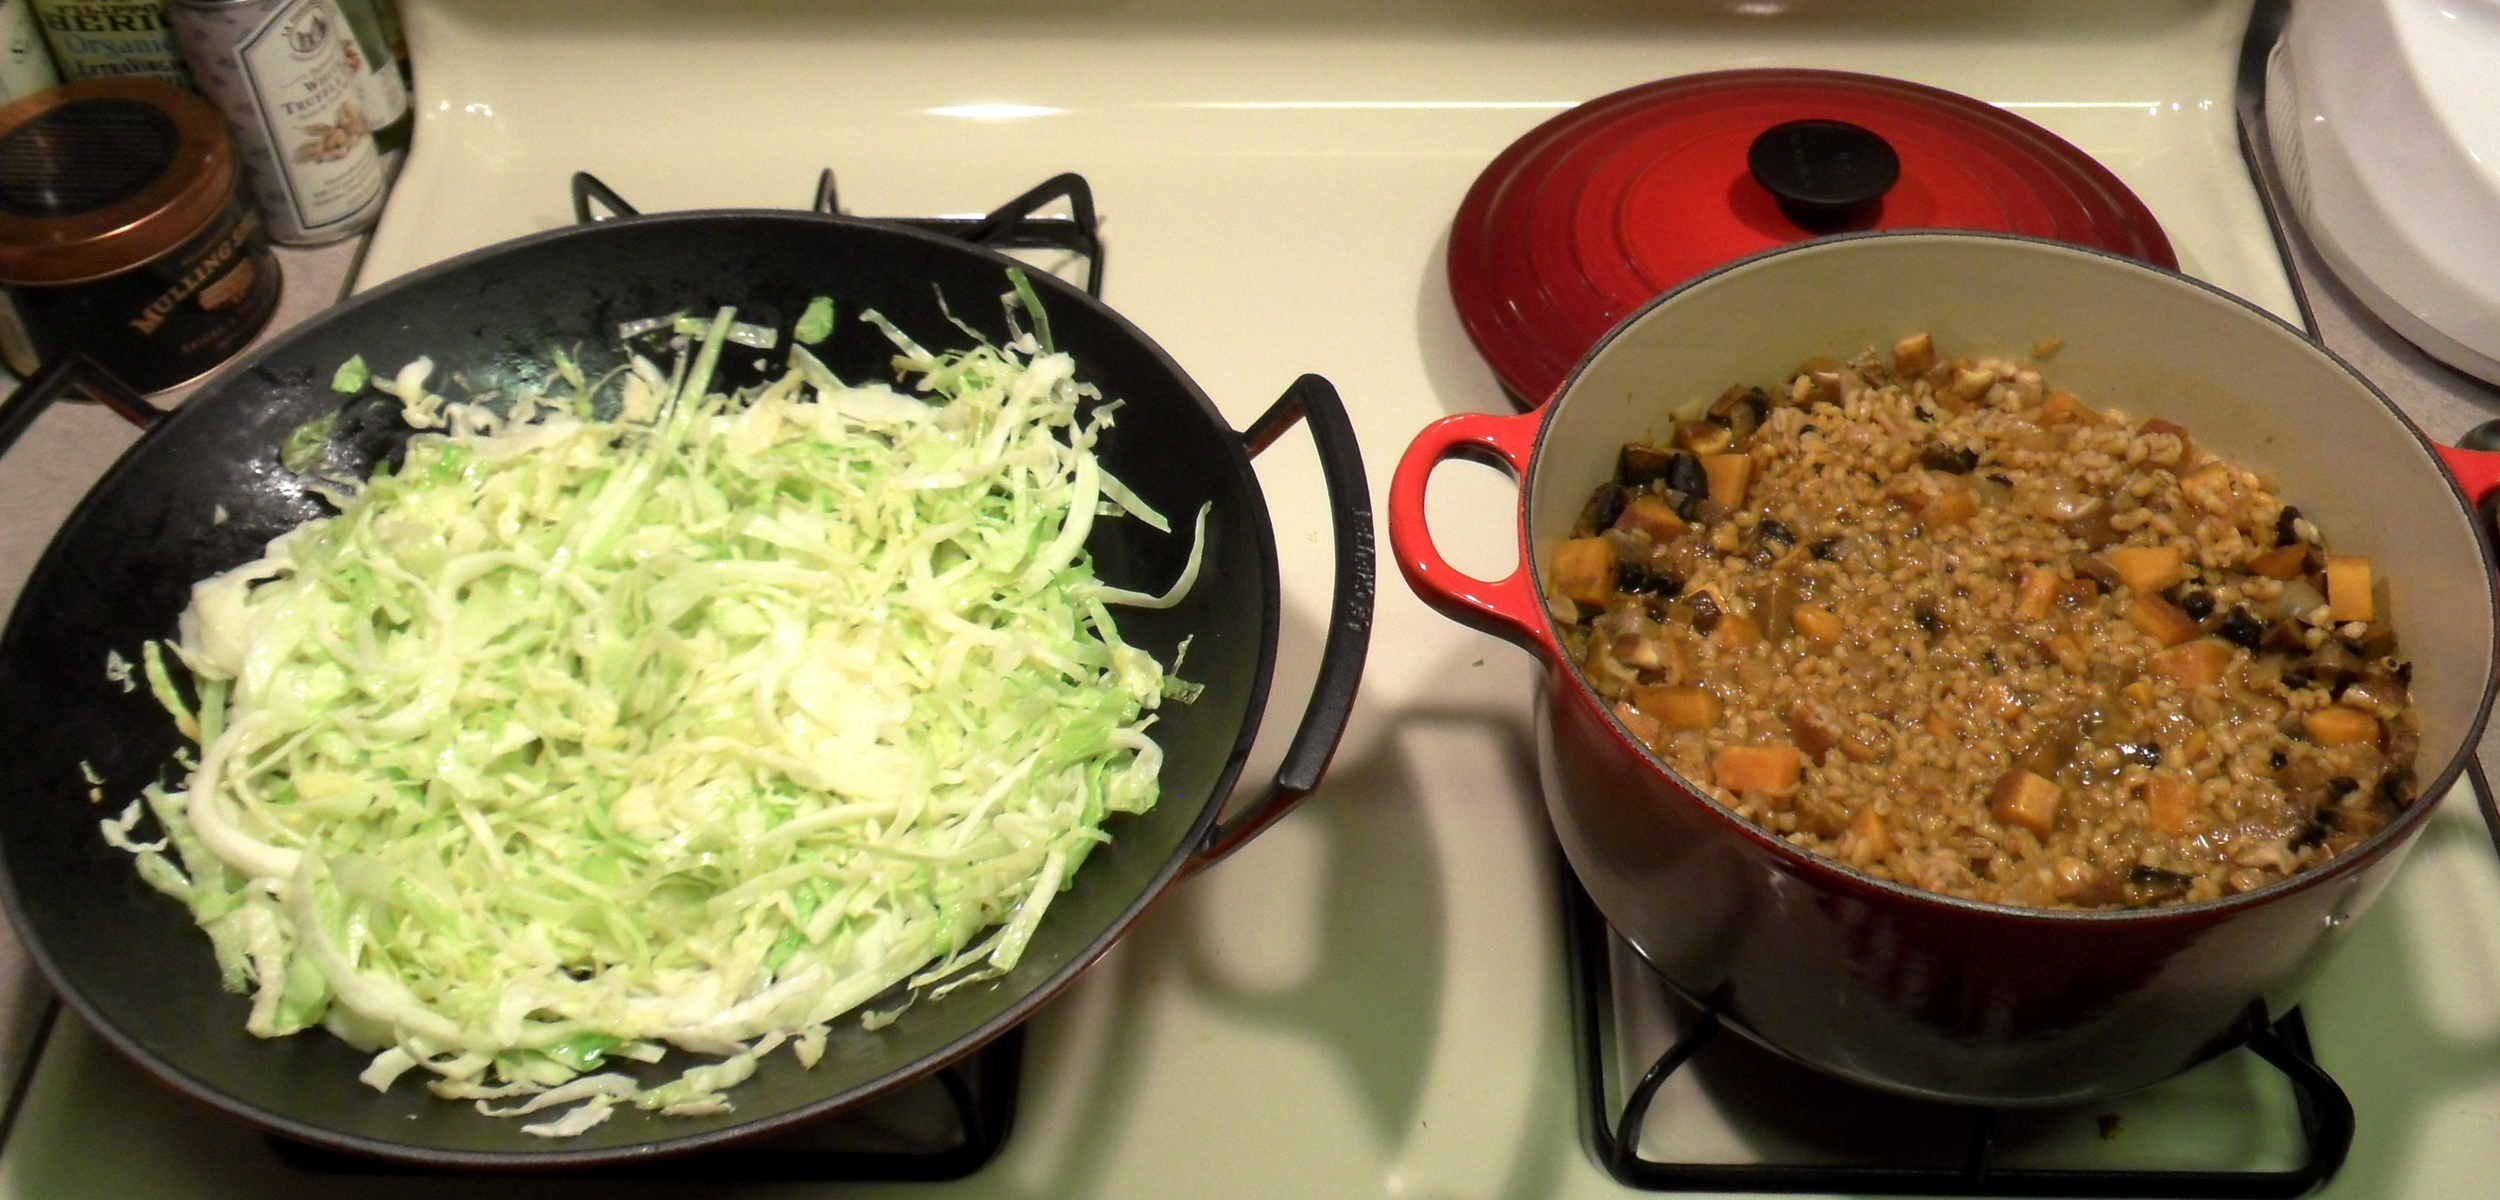 Here I am using two le creusets to cook a vegan dinner!